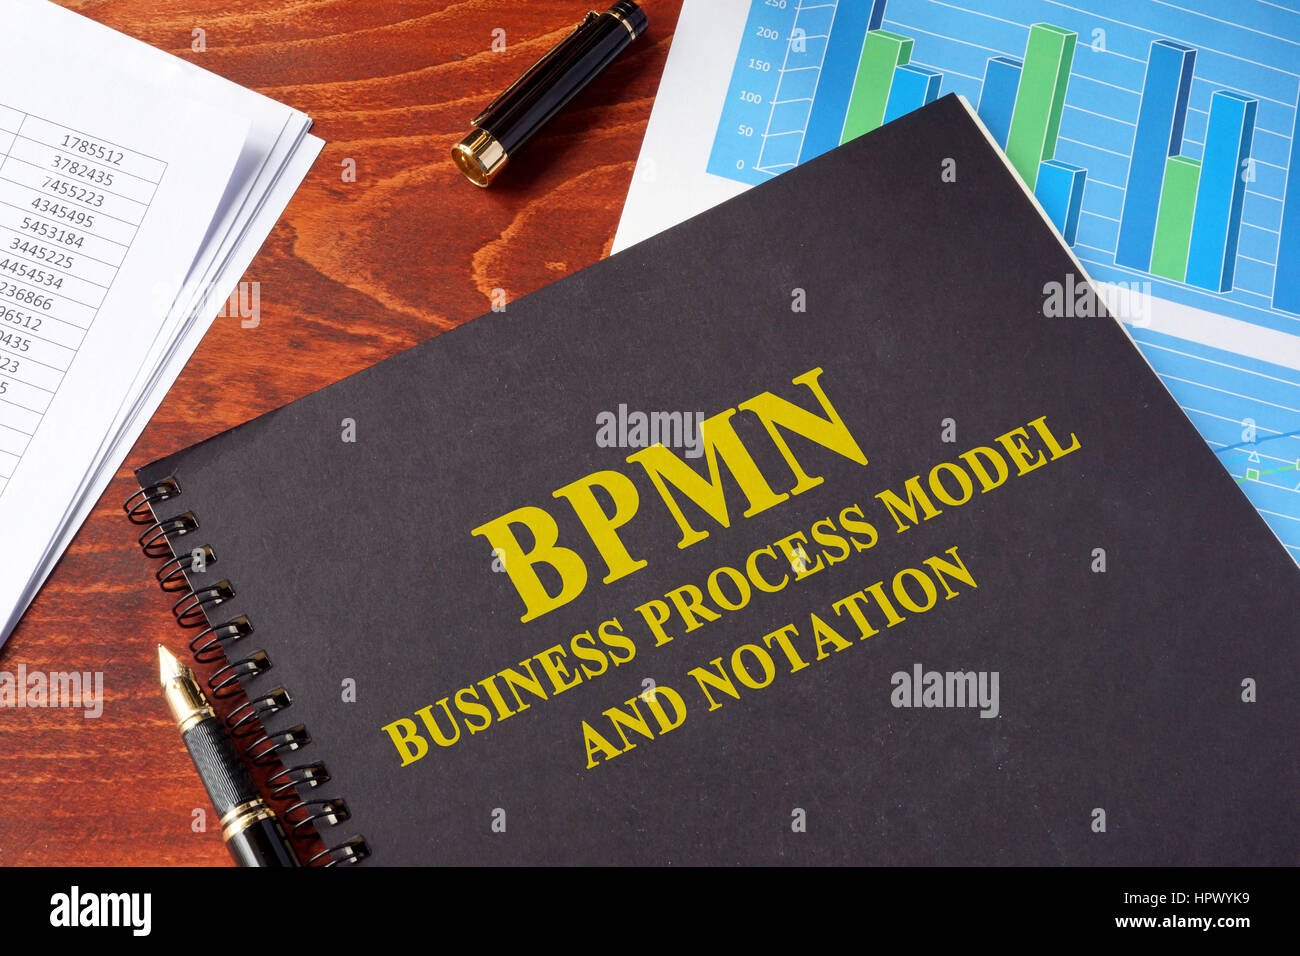 book with title bpmn business process model and notation - Bpmn Book